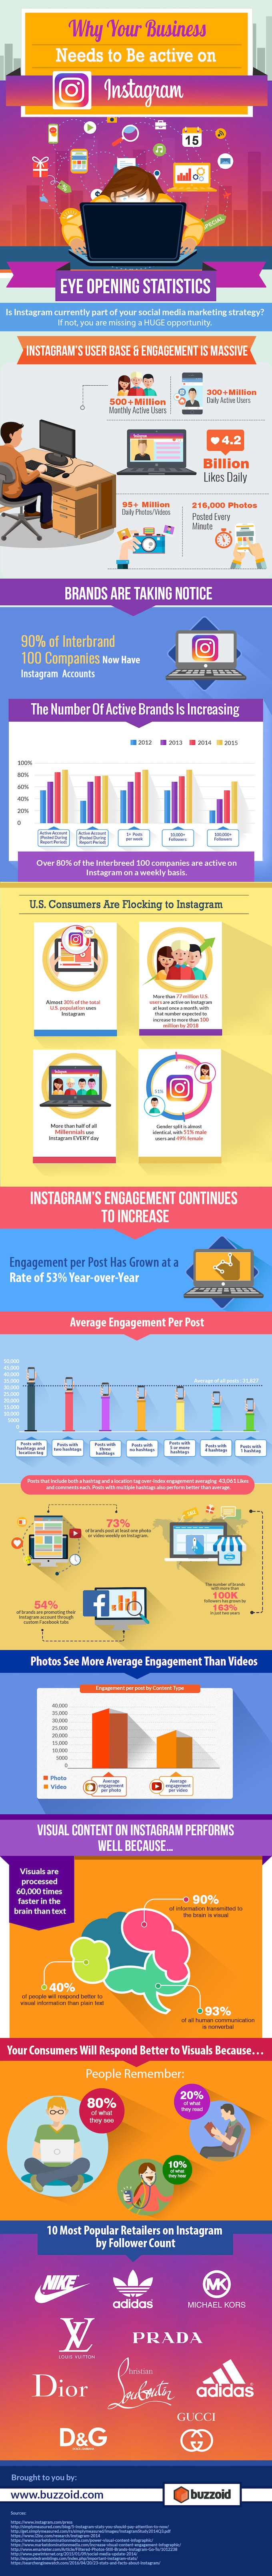 3 Reasons To Add Instagram To Your Marketing Playbook [Infographic] | Social Media Today